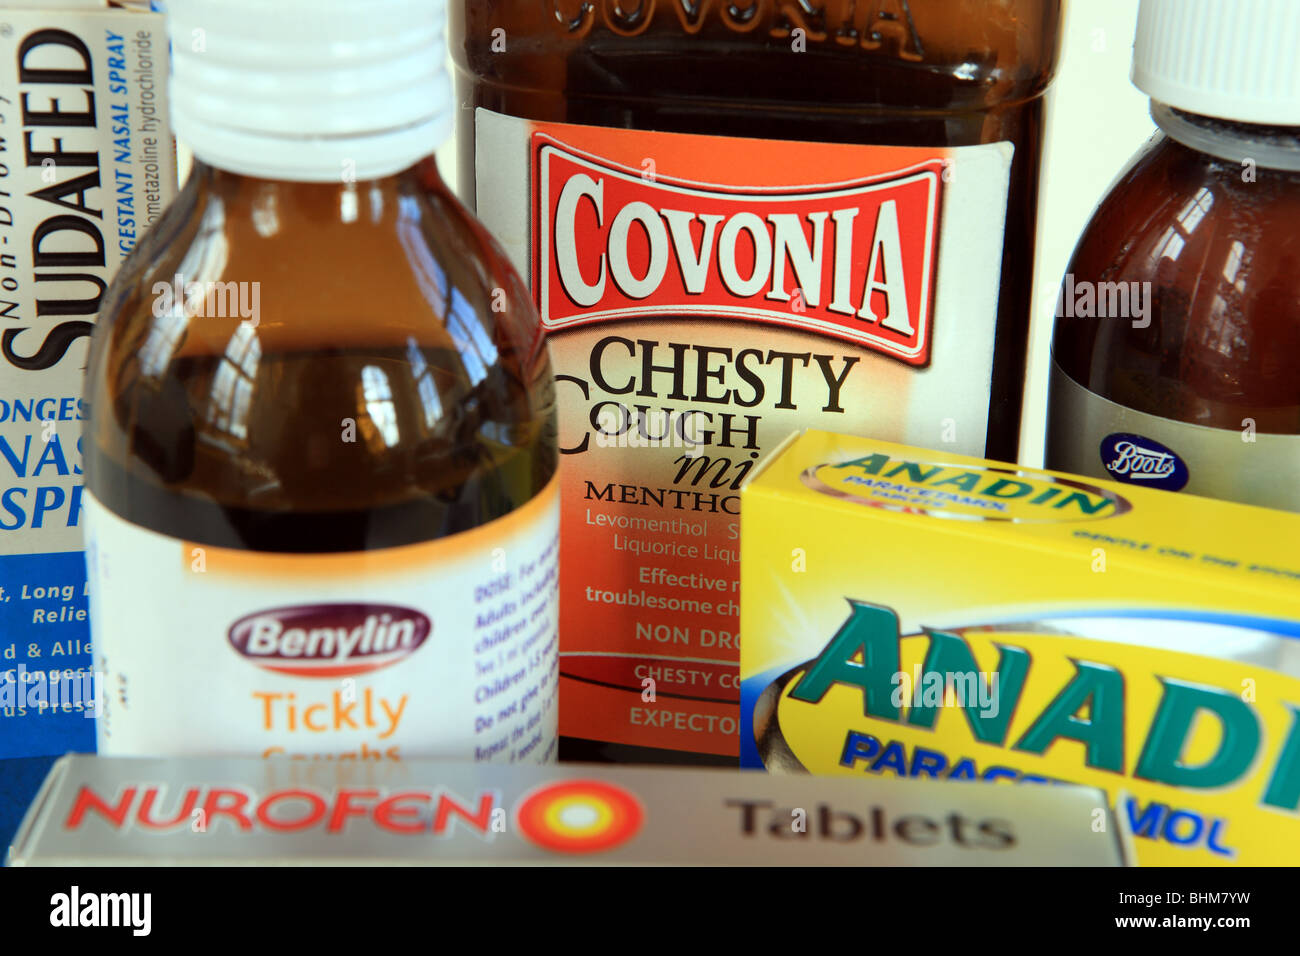 Cold & Flu remedies - Stock Image